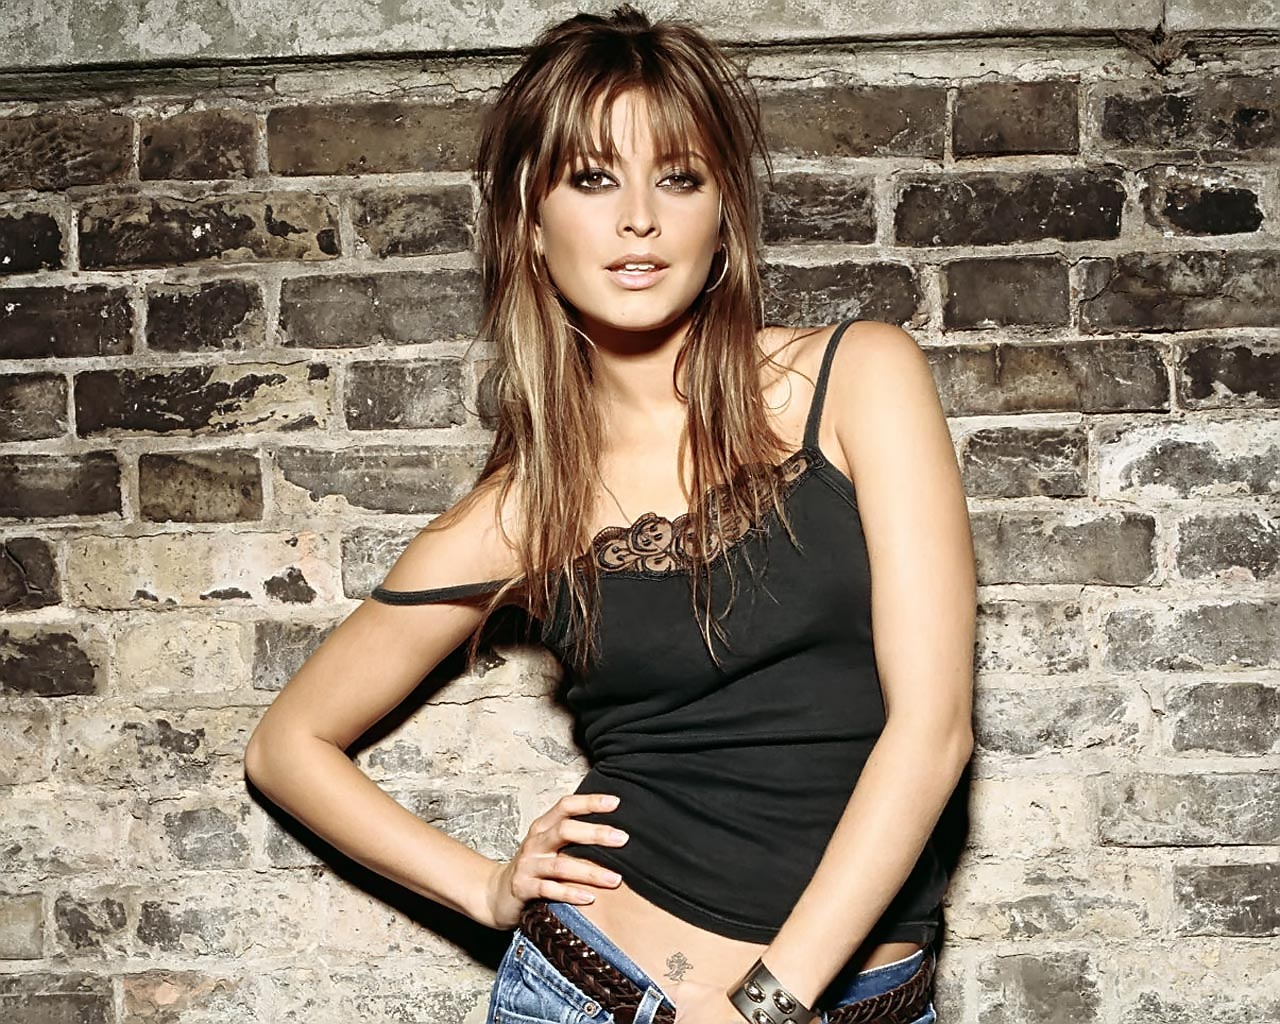 Something is. holly valance nude pics agree, this